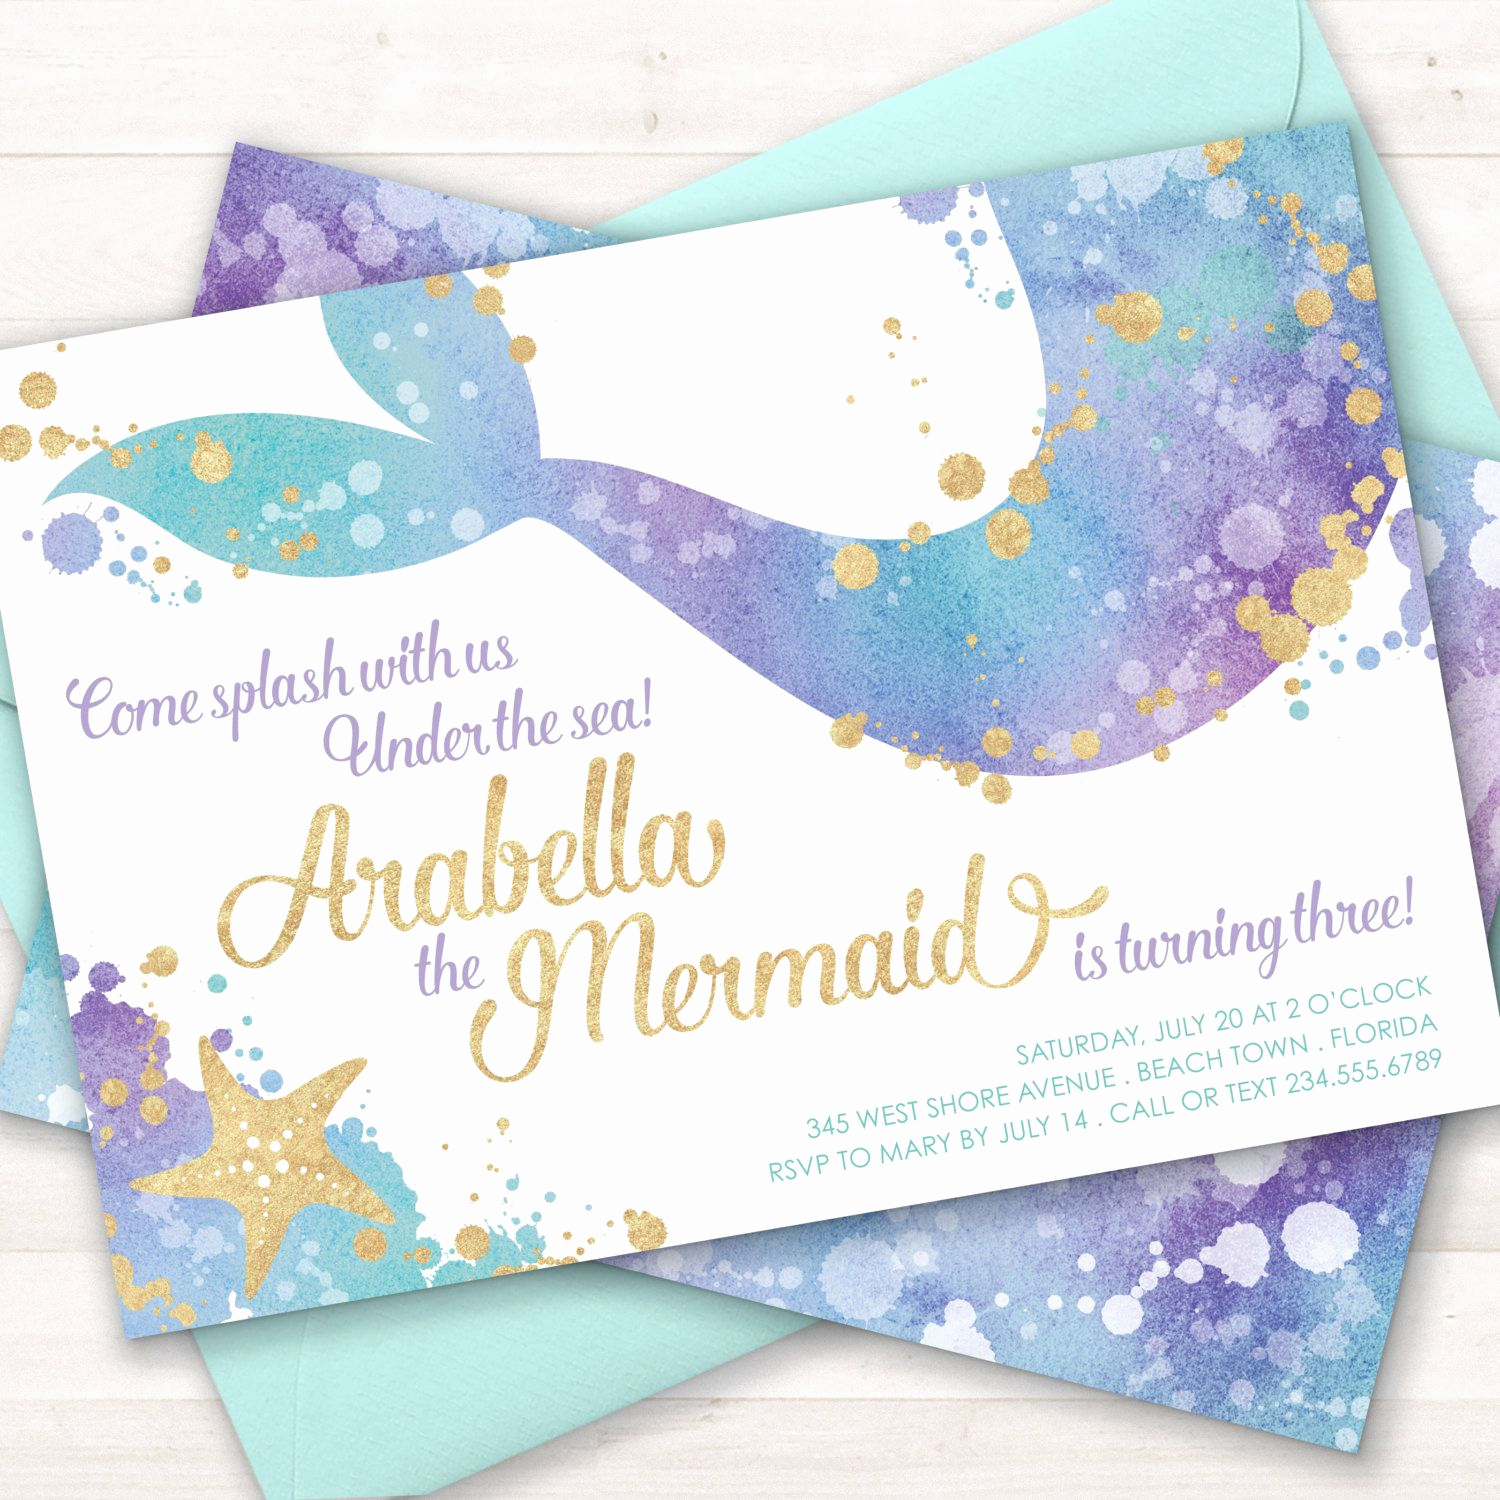 Little Mermaid Invitation Wording Fresh Mermaid Invitation Mermaid Party Invite Under the Sea